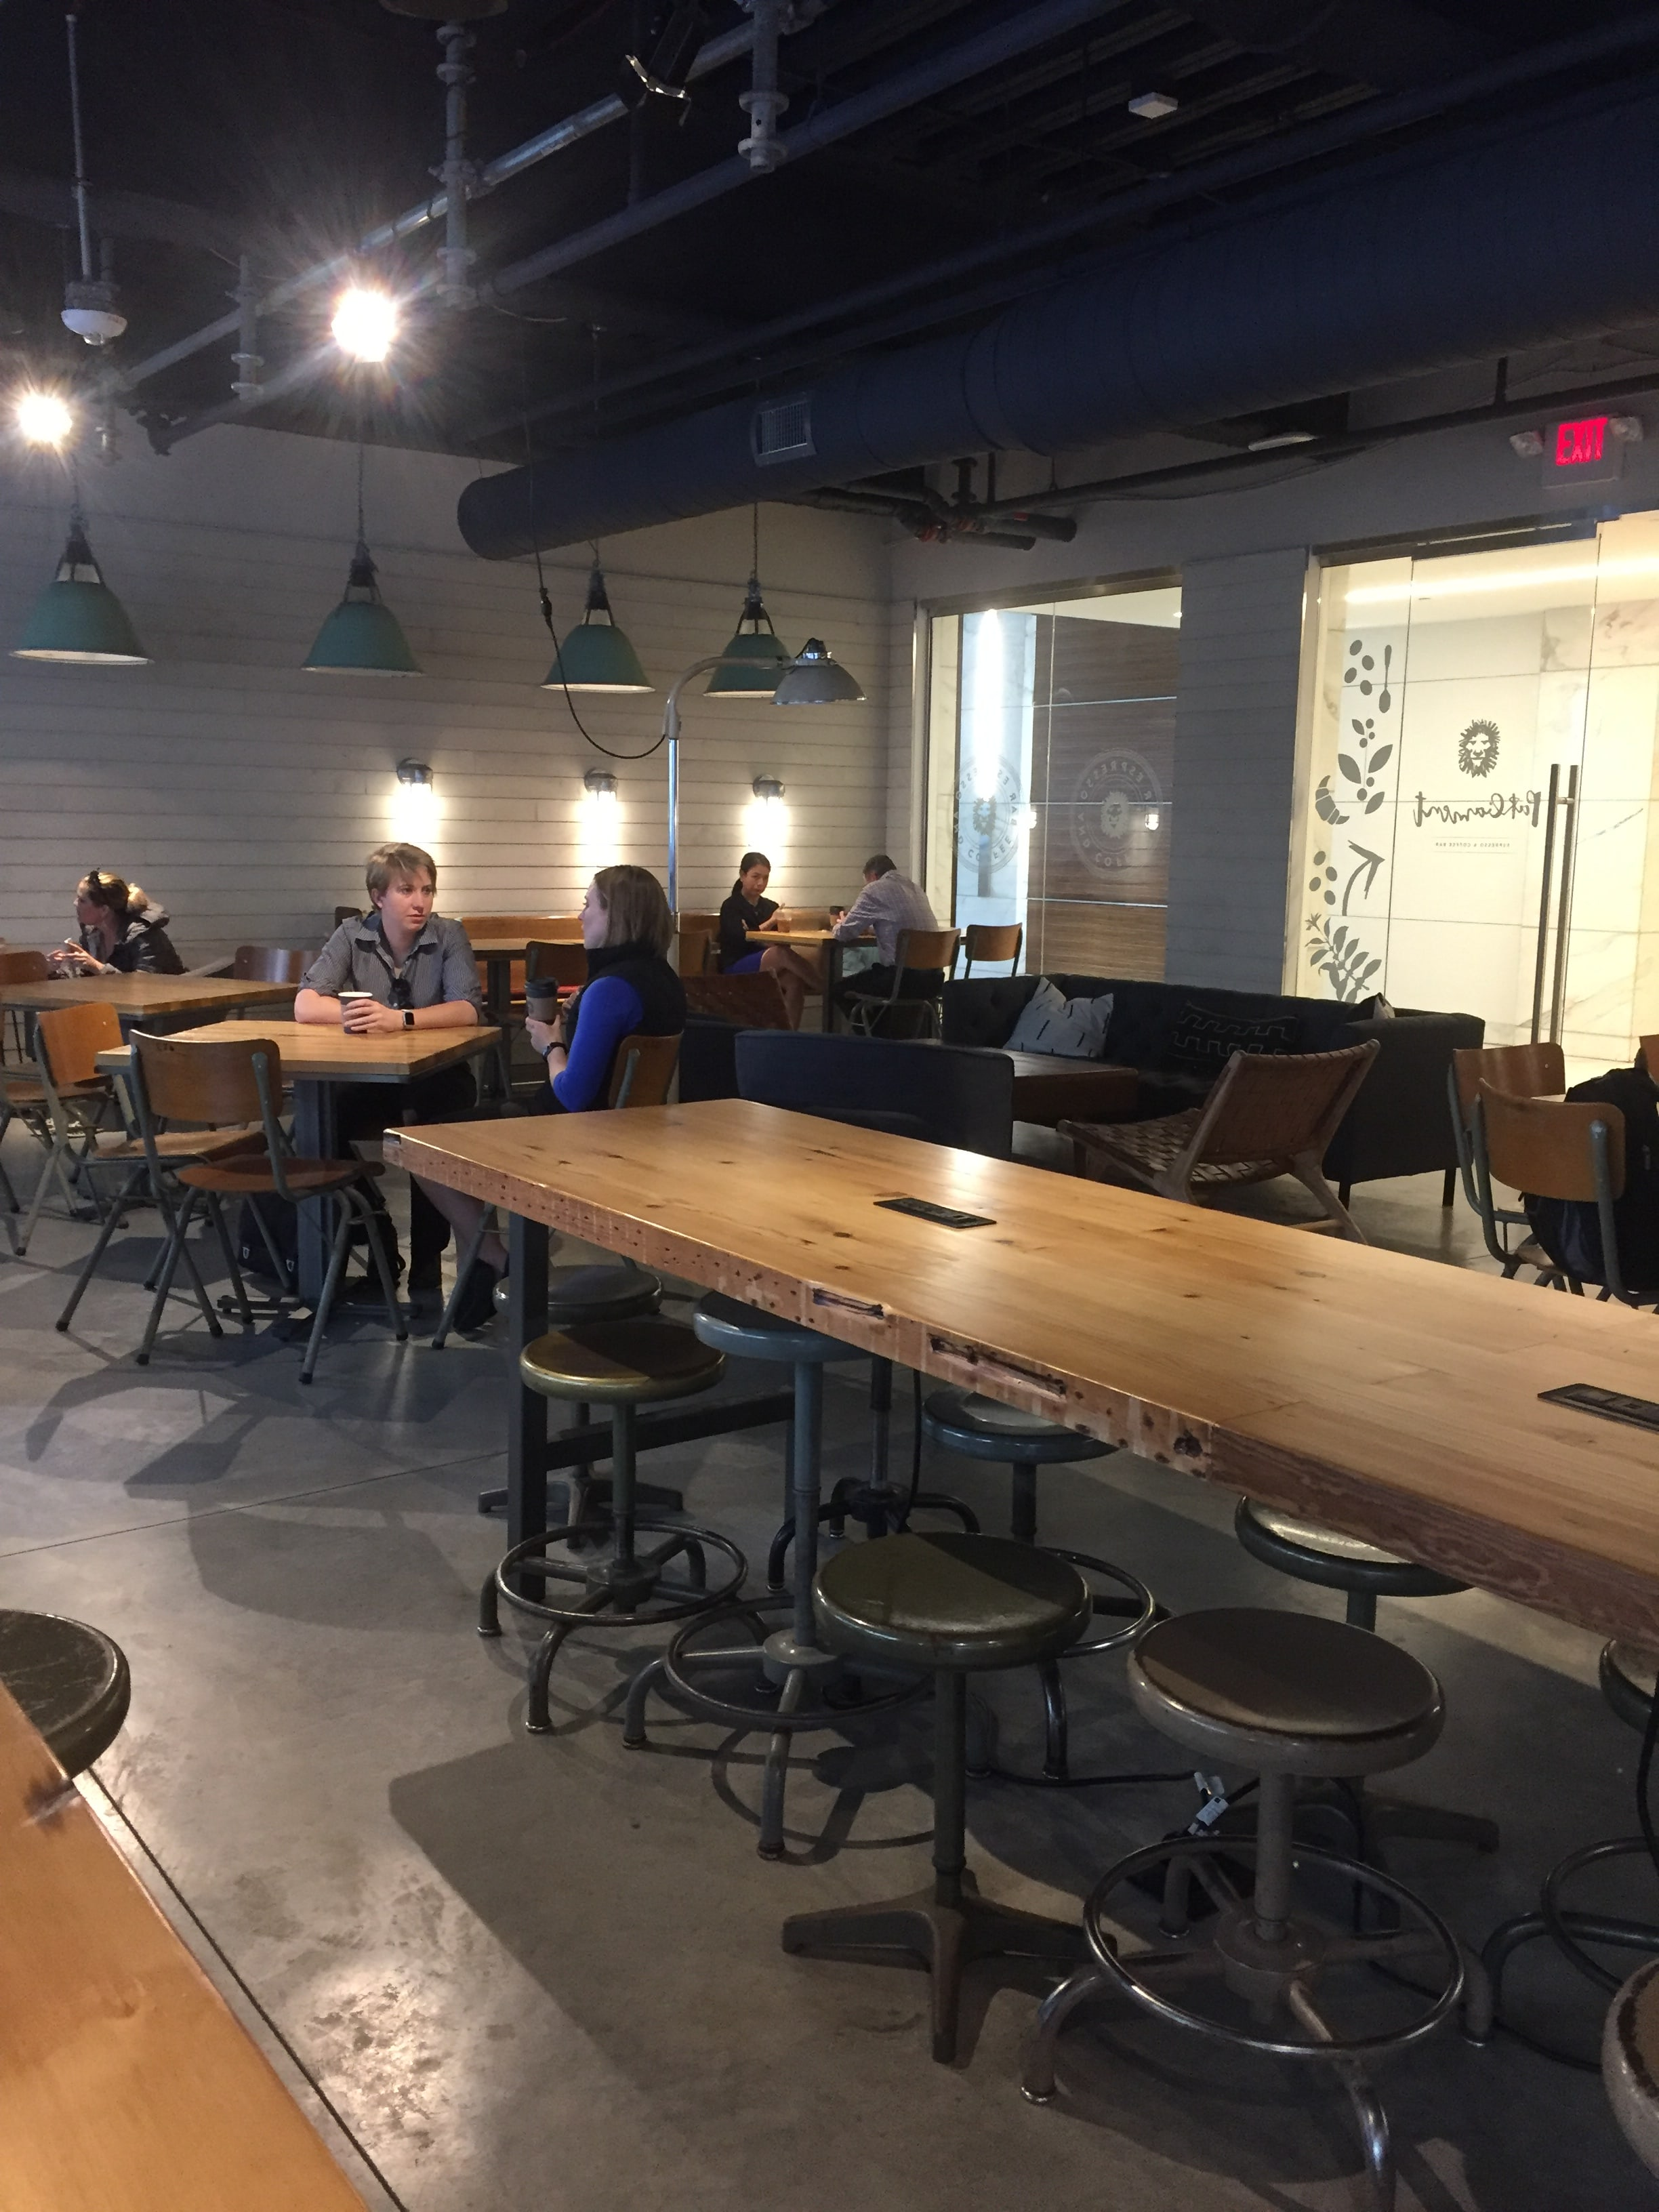 Charlotte Parliament Espresso and Coffee Bar. Lots of space and plugs to work with.